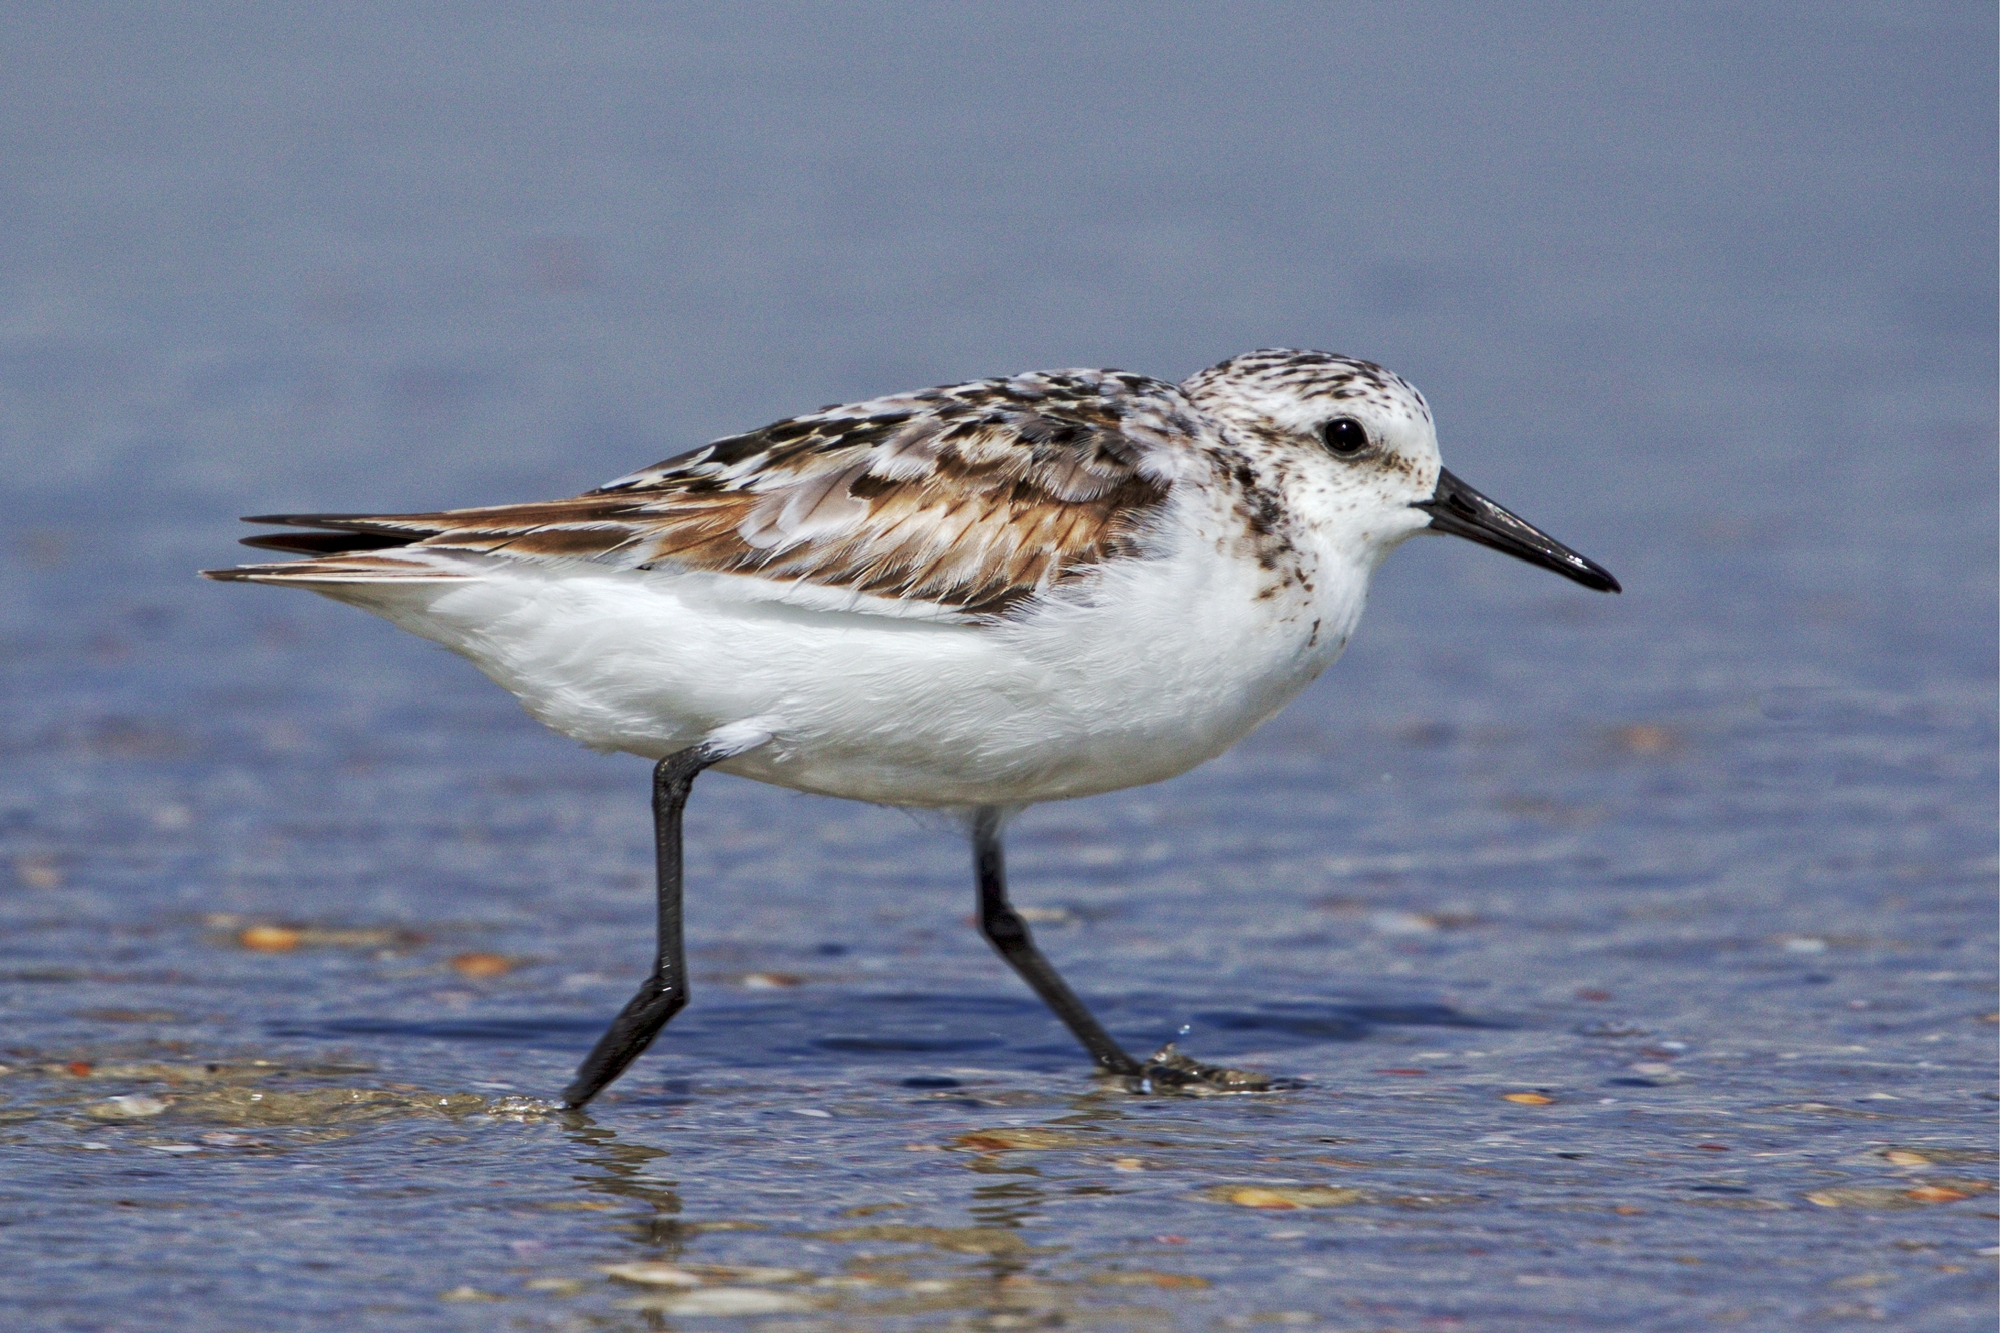 """ Freckles"" the Sanderling scampers across the surf zone in search of snacks.."